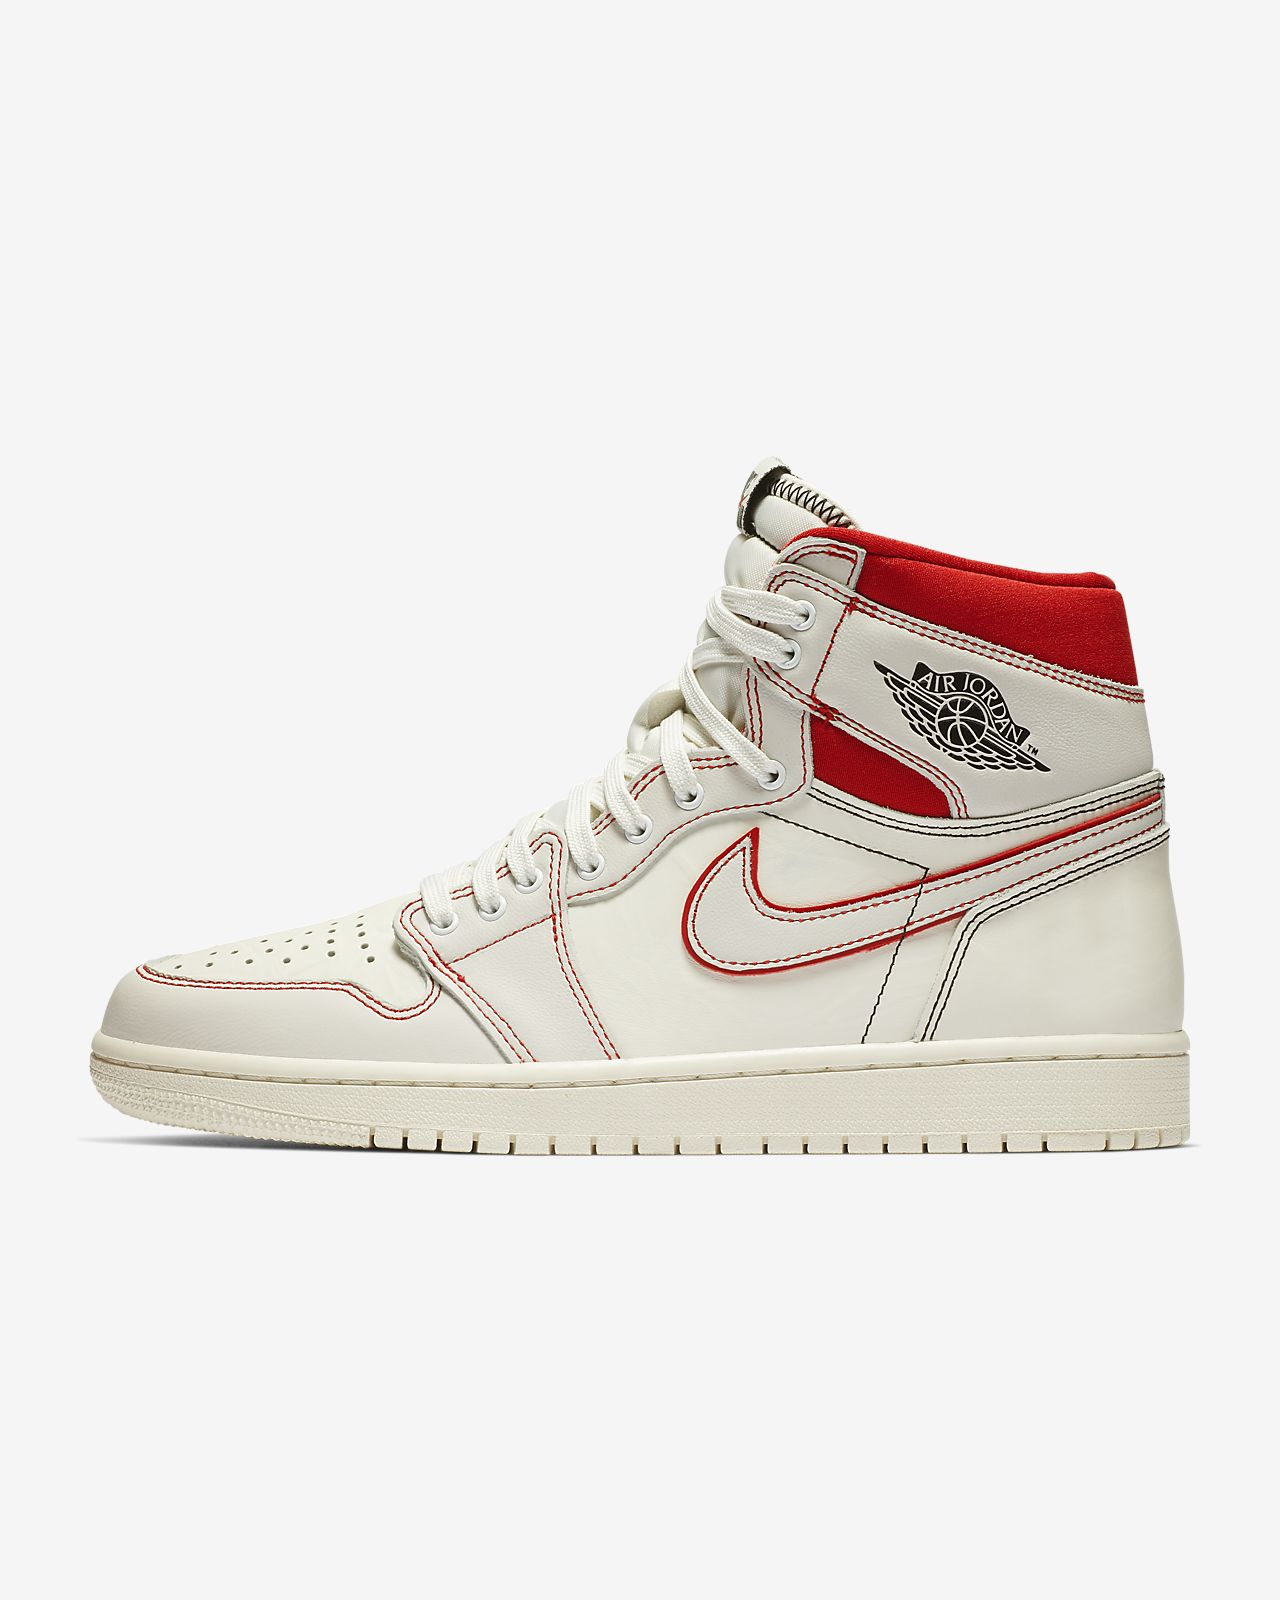 new concept 696e5 3ecd6 Air Jordan 1 Retro High OG